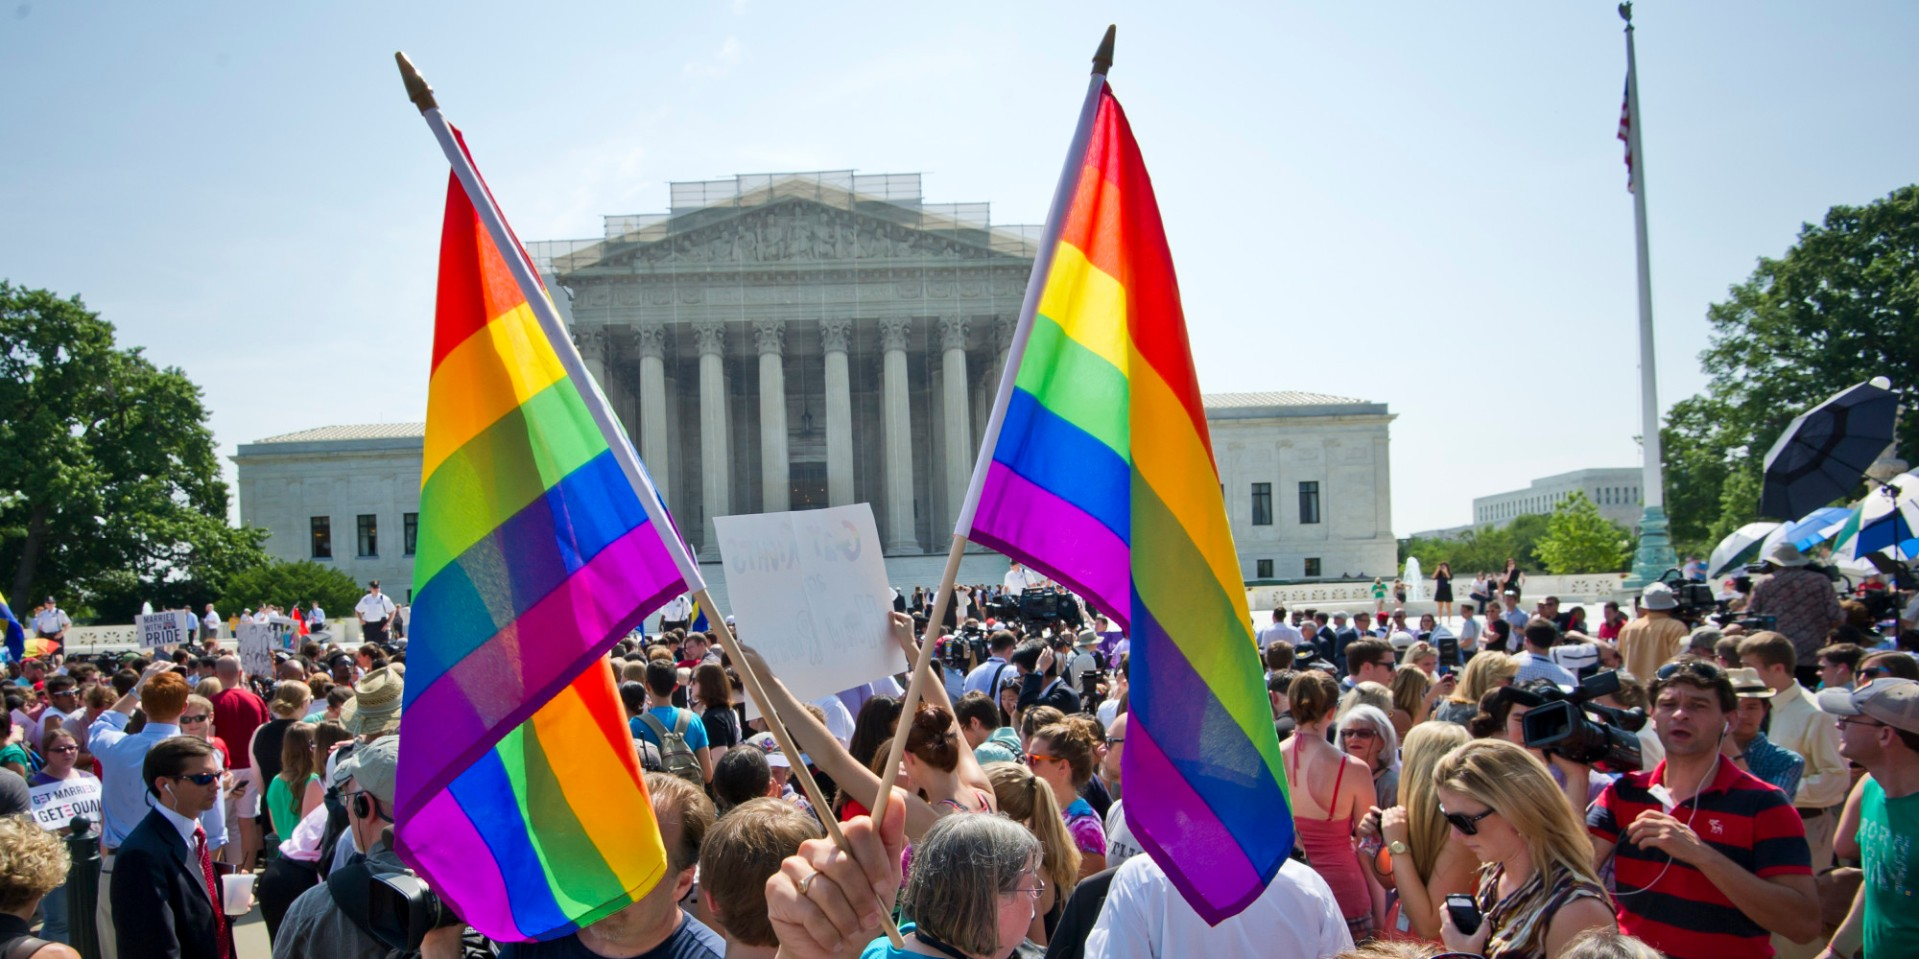 Hundreds of people gather outside the US Supreme Court building in Washington, DC on June 26, 2015. (Photo credit, MLADEN ANTONOV/AFP/Getty Images